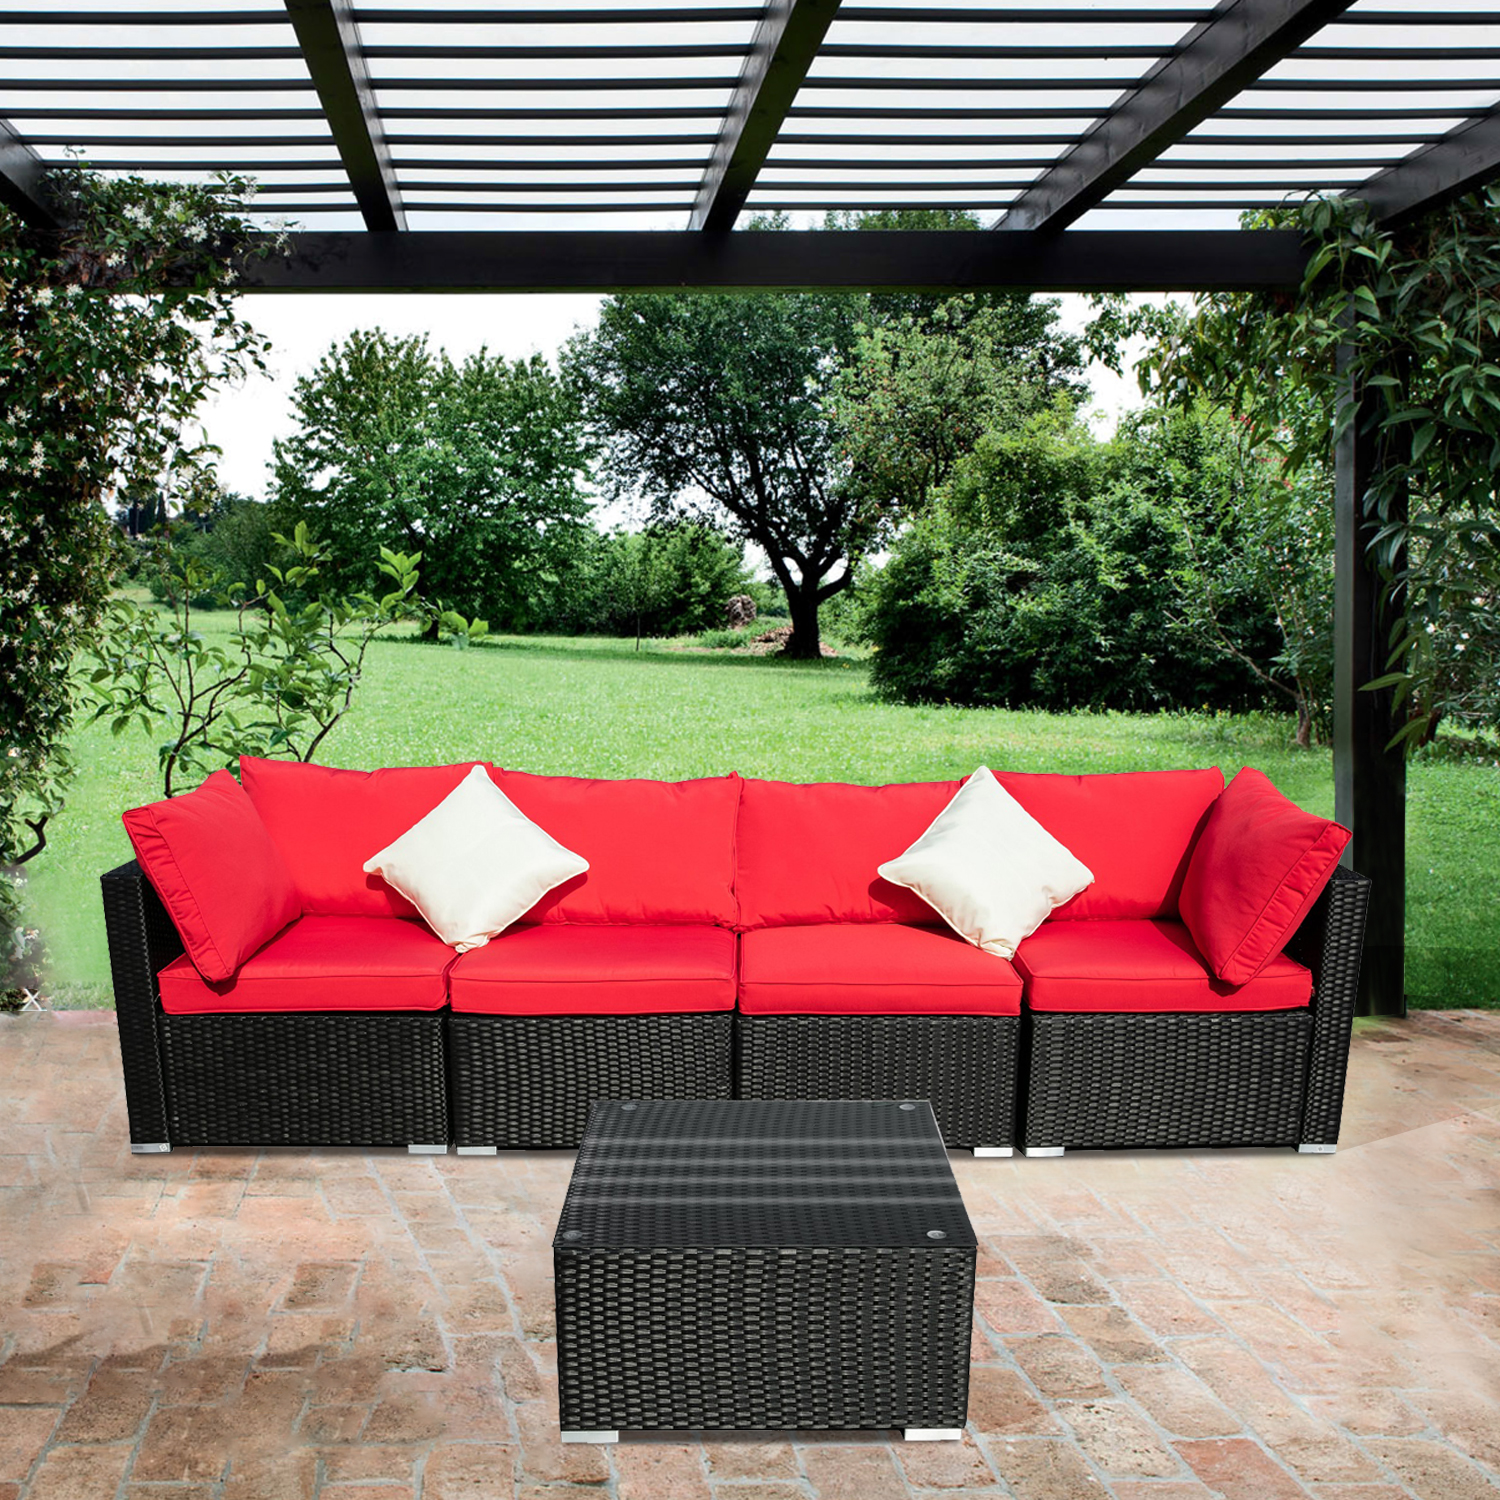 ainfox outdoor patio furniture on clearance 5 pieces pe rattan wicker sectional sofa sets couches with red cushions white pillows